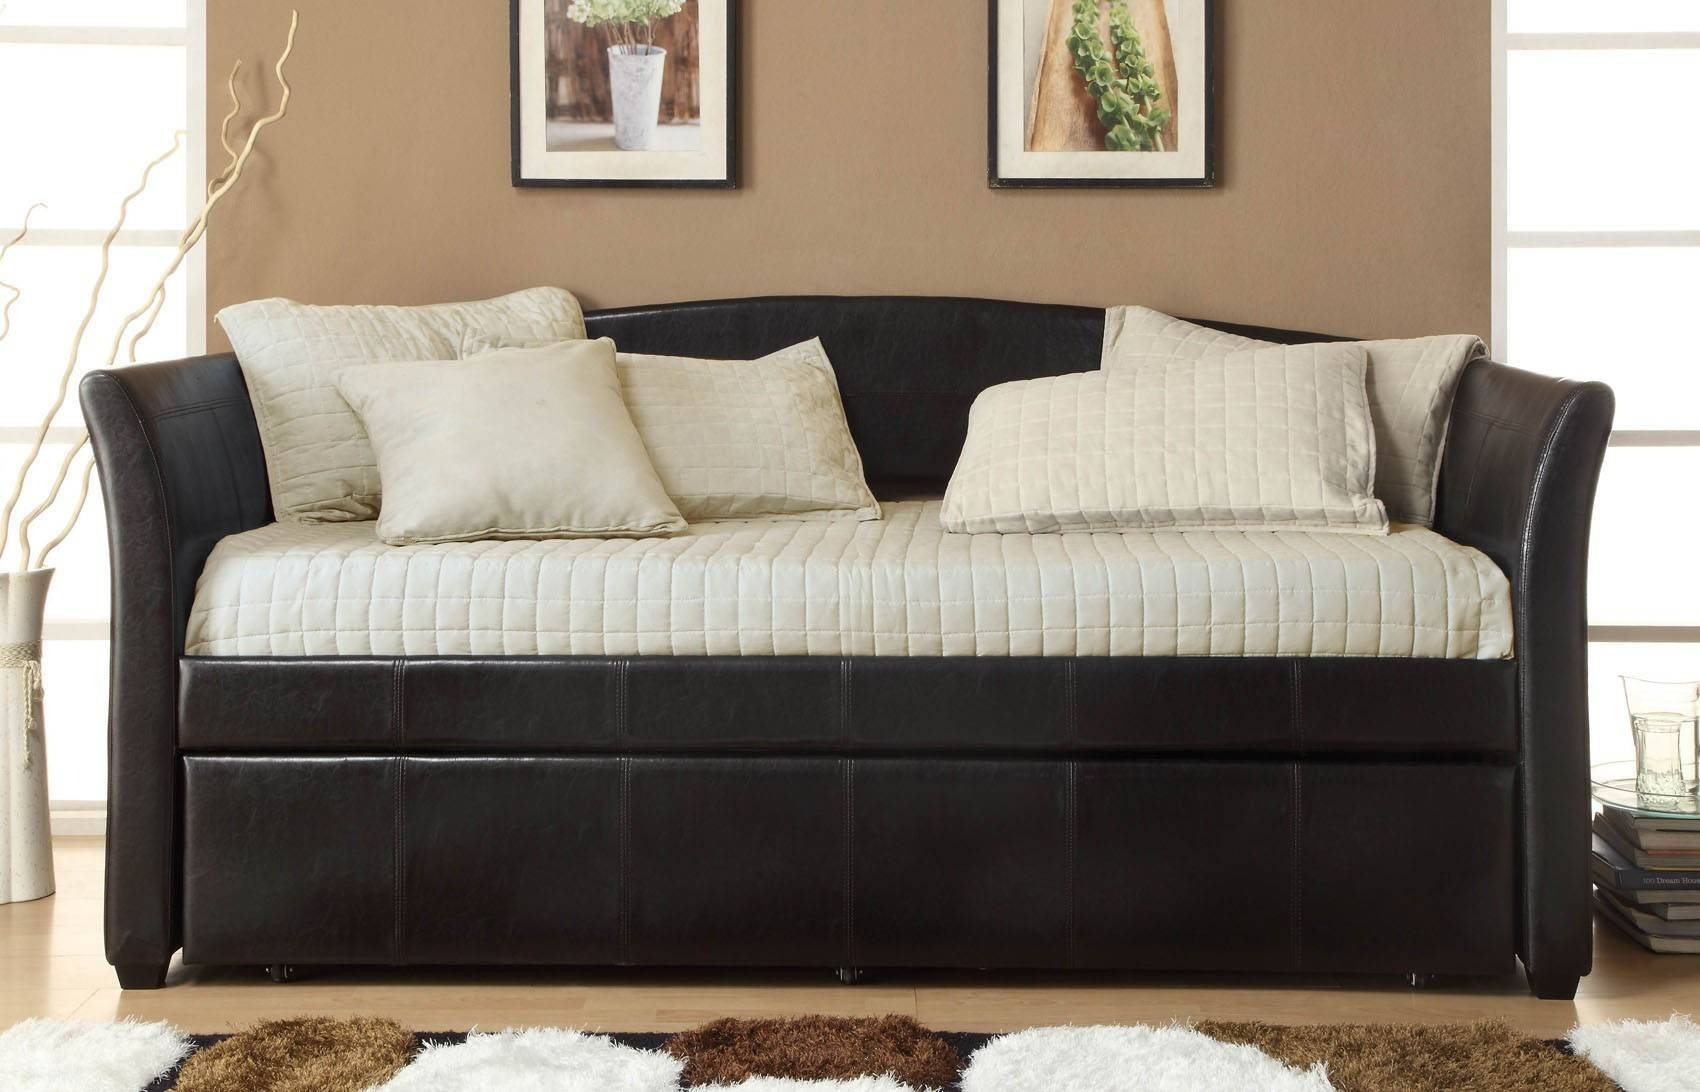 Bedroom Furniture : Leather Sleeper Sofa Sofa Convertibles Pertaining To Sofa Convertibles (View 11 of 30)